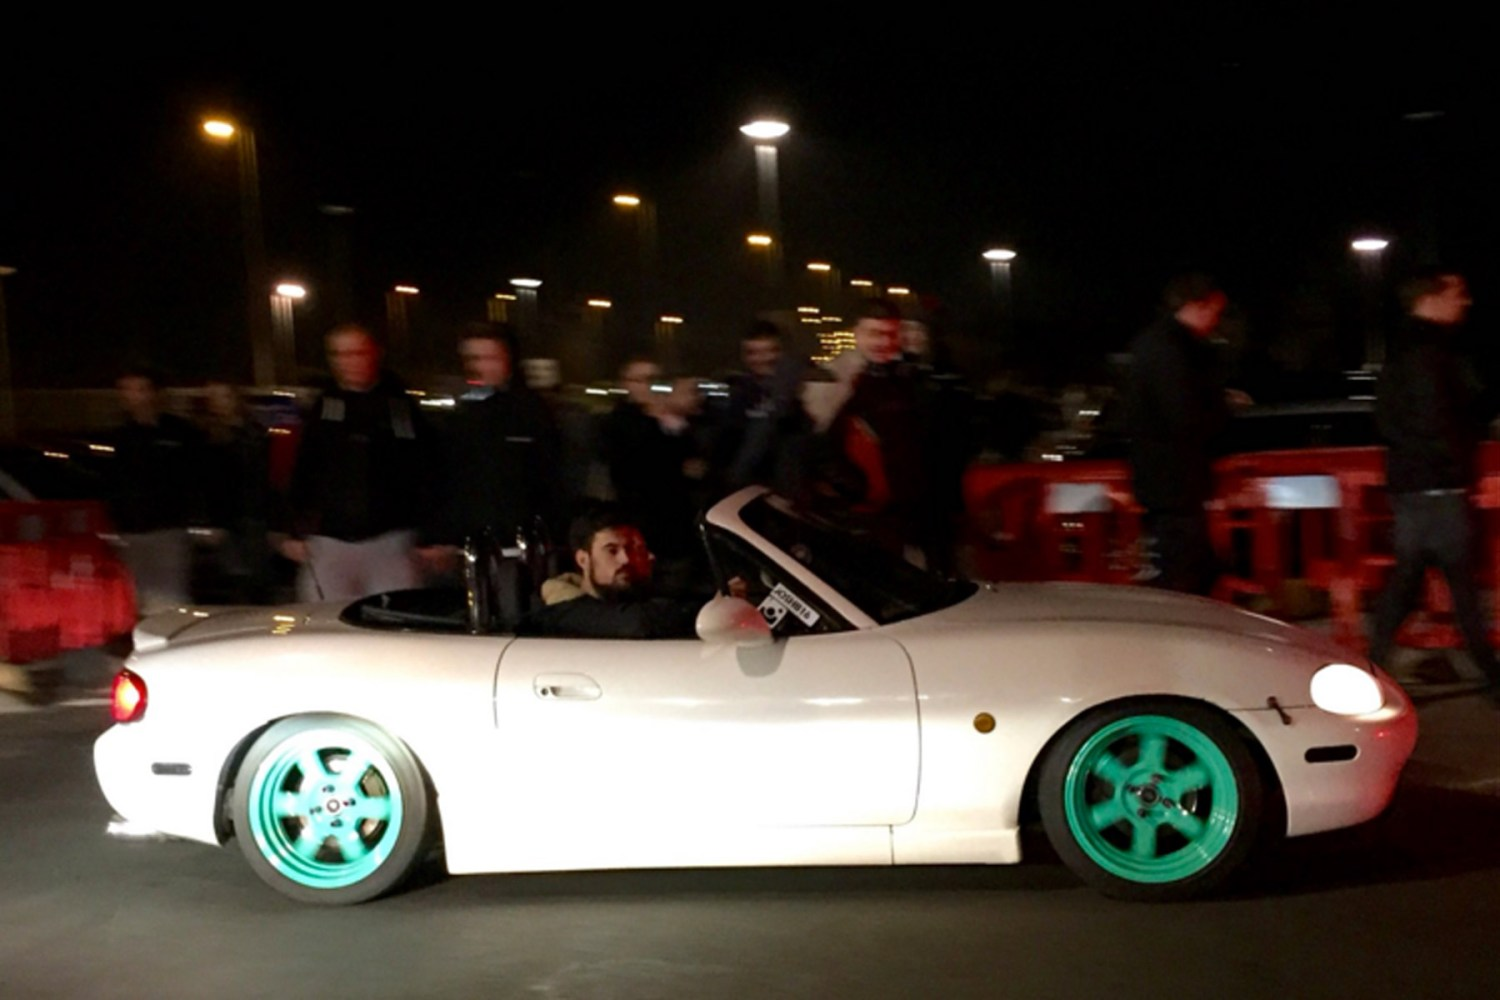 Police close Cobham Services after car meet goes viral